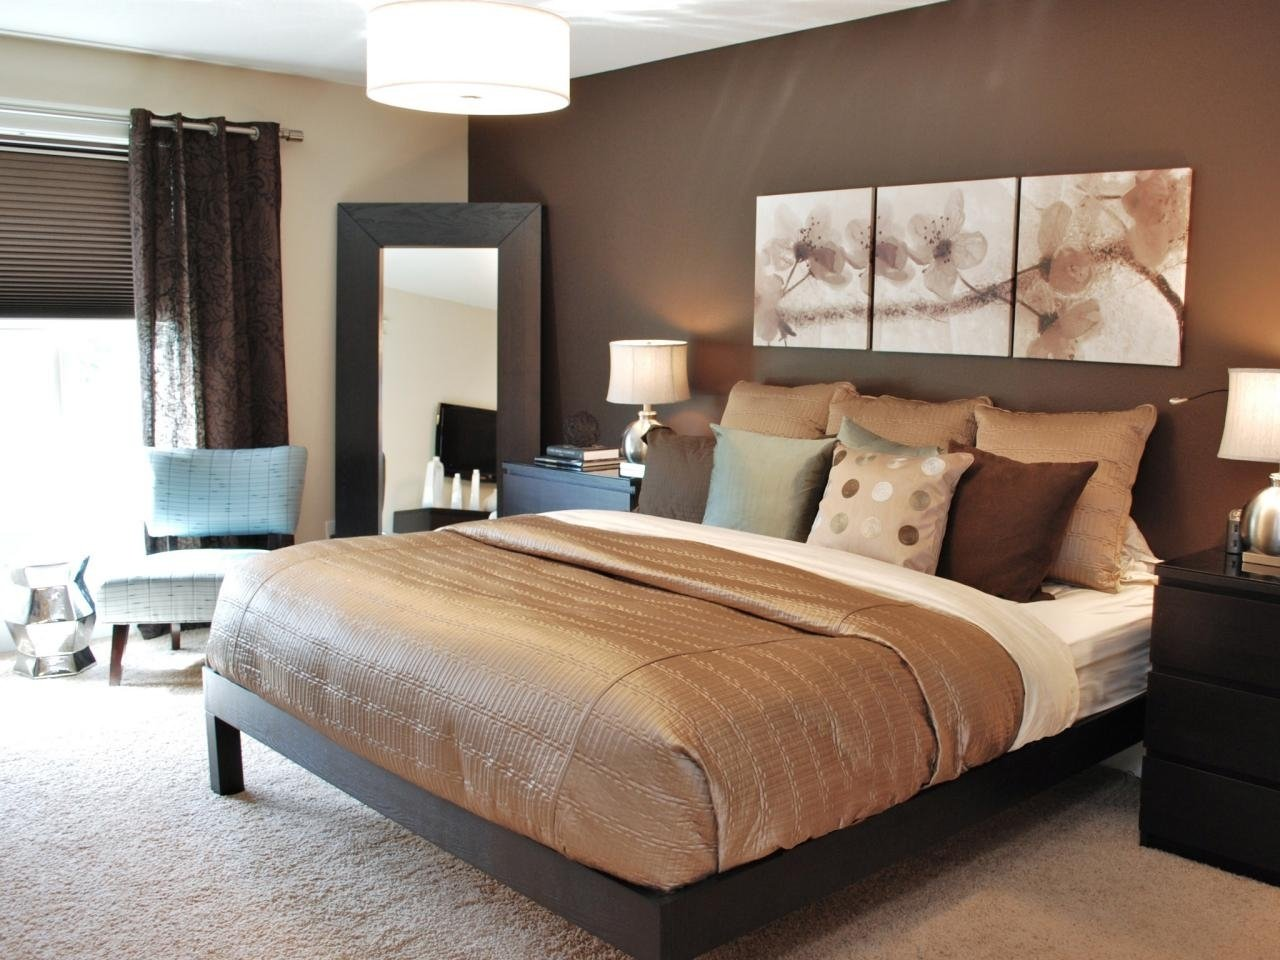 10 Pretty Paint Color Ideas For Bedrooms fabulous modern bedroom paint color schemes color schemes for 2021